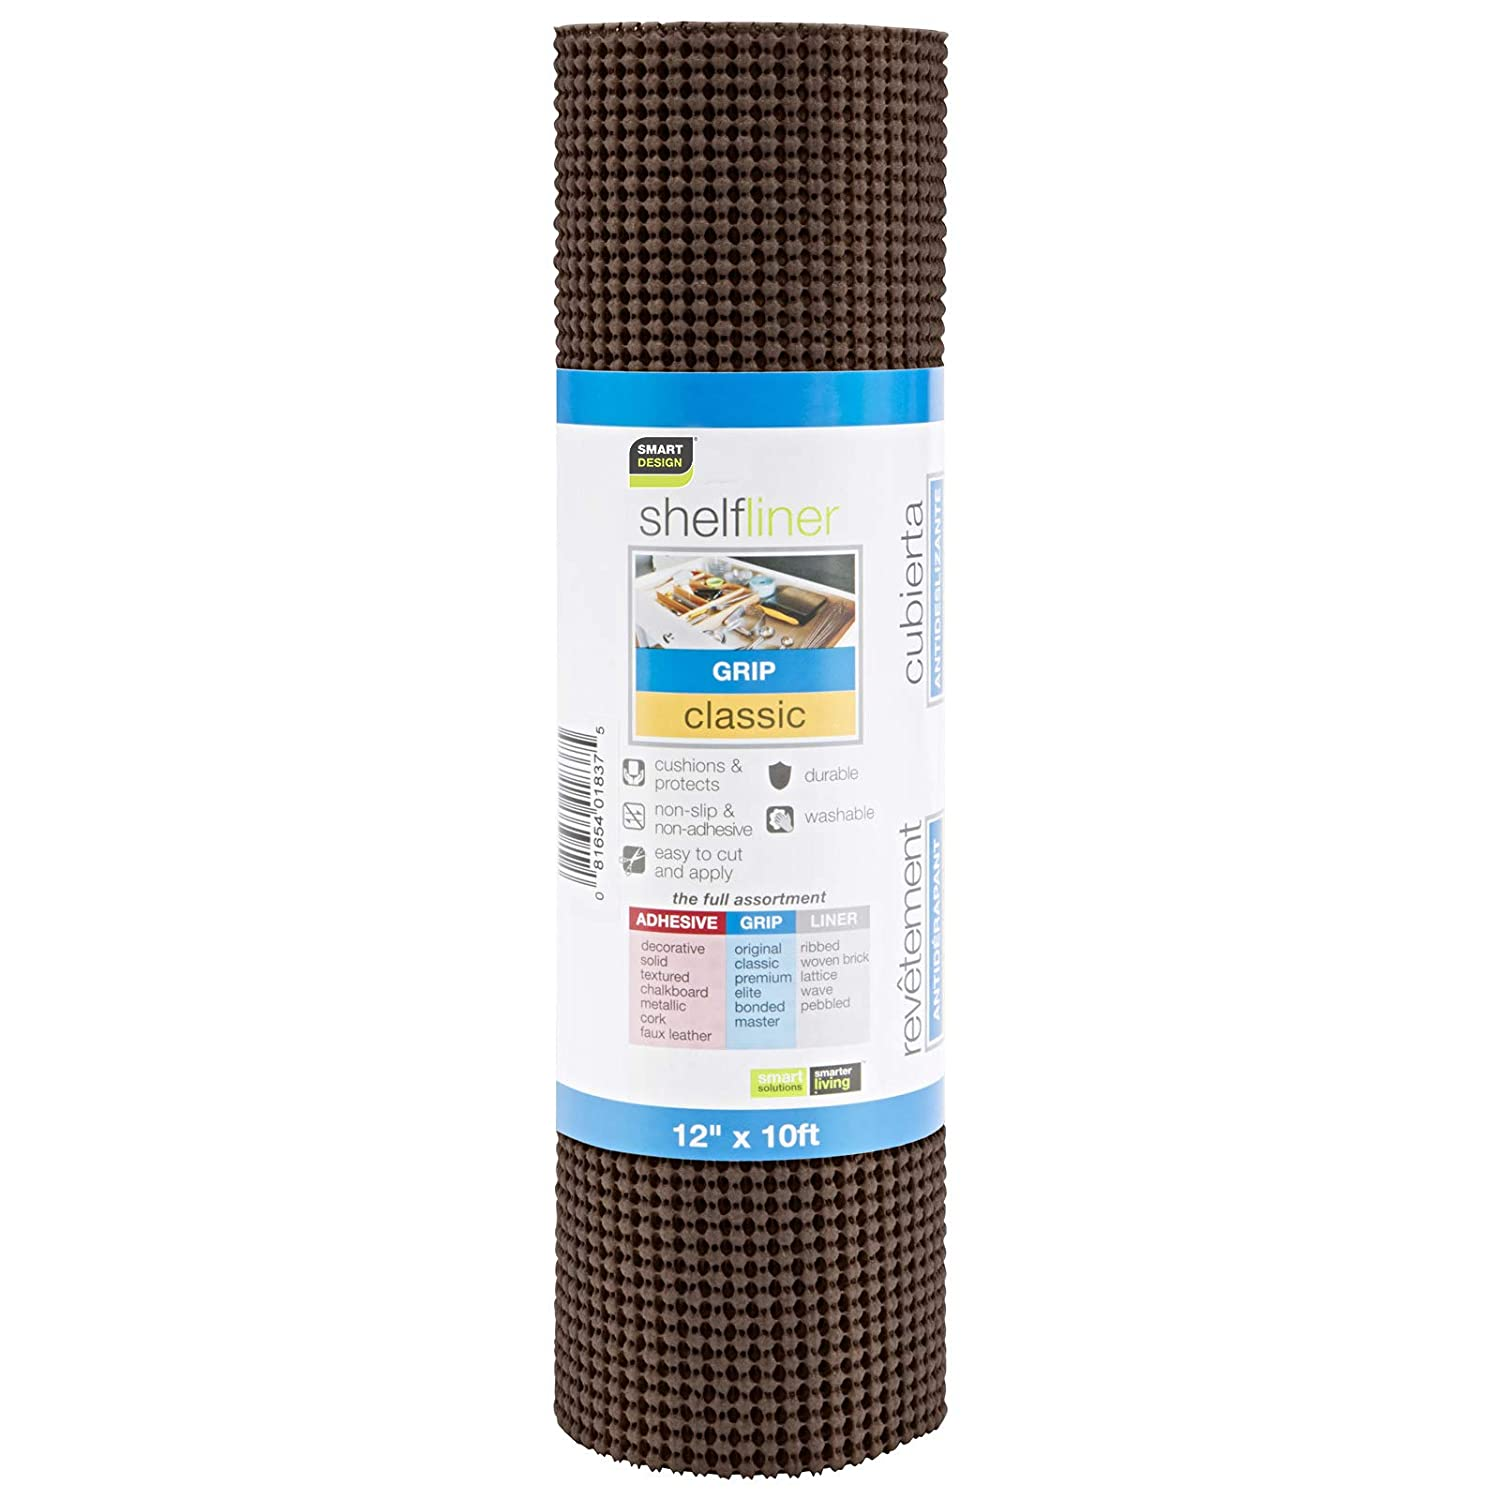 Wipes Clean Drawers 12 Inch x 10 Feet Cutable Material Non Slip Design Kitchen for Shelves Smart Design Shelf Liner w//Classic Grip Flat Surfaces Coffee Bean